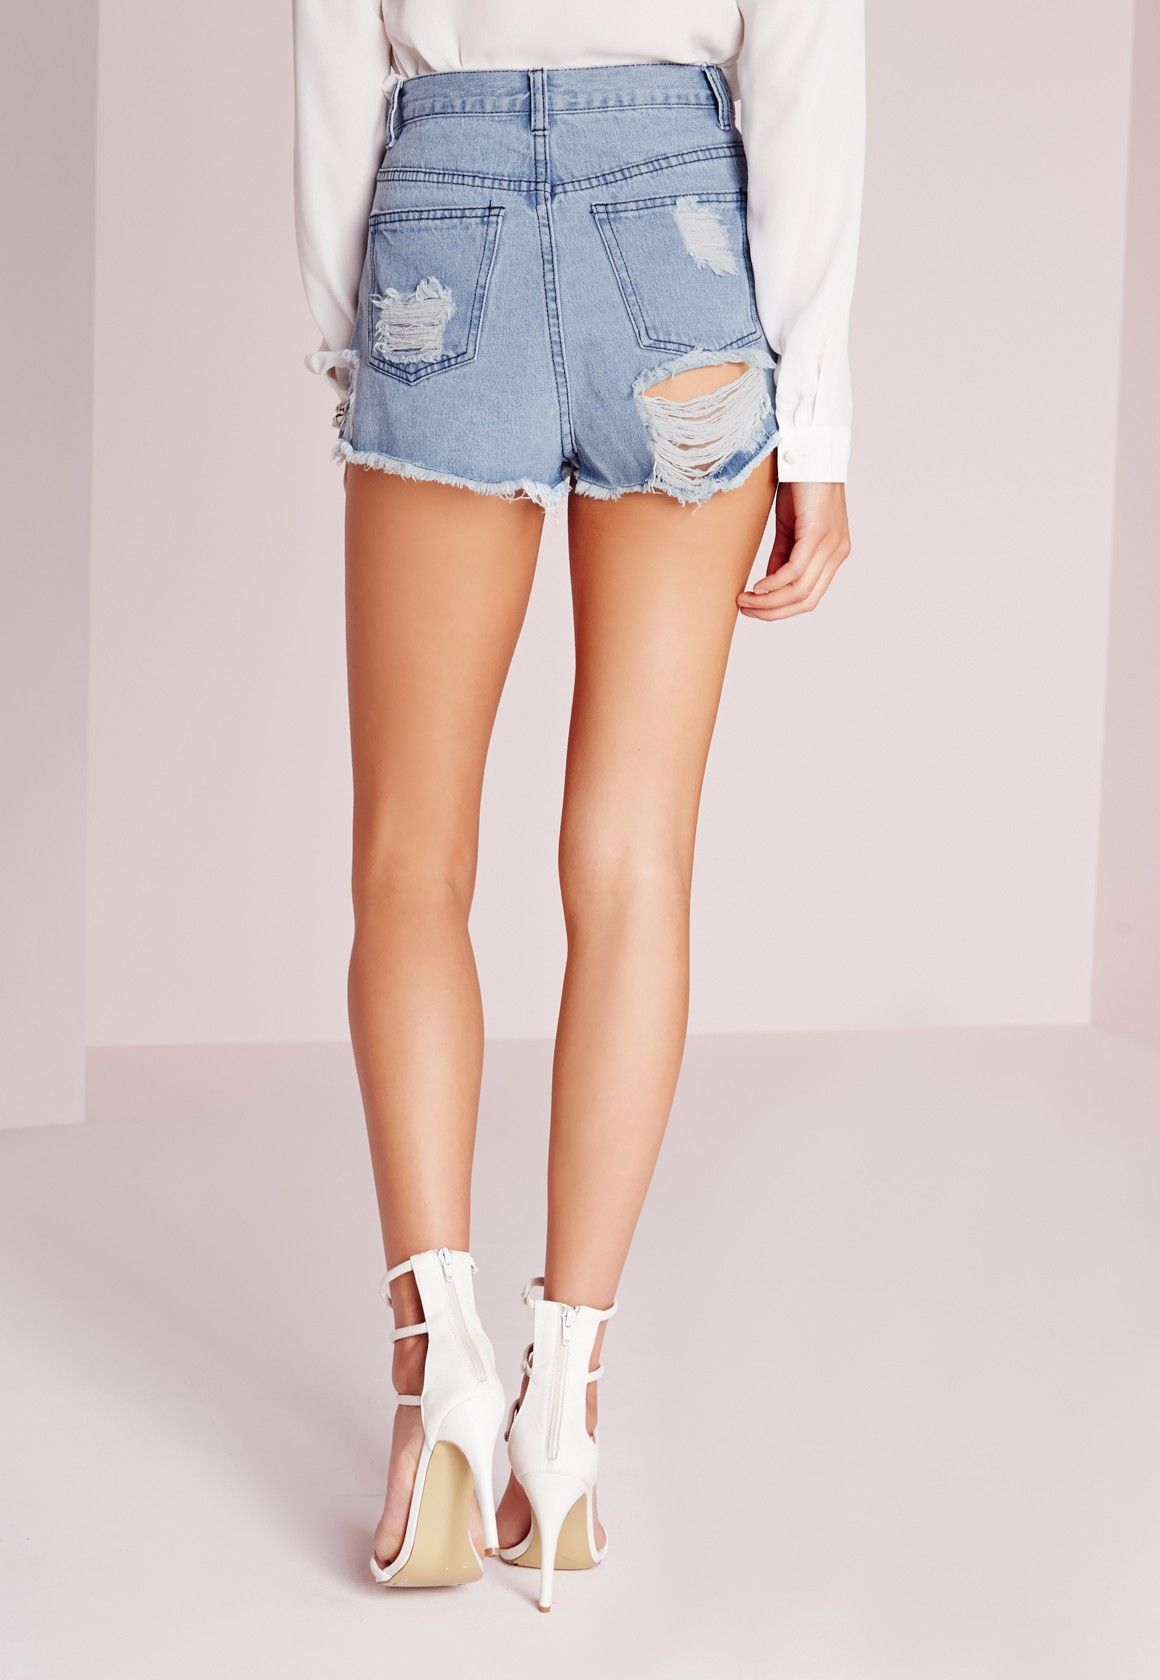 403d94ab15 Missguided - Extreme Rip High Waisted Denim Shorts Vintage Blue ...